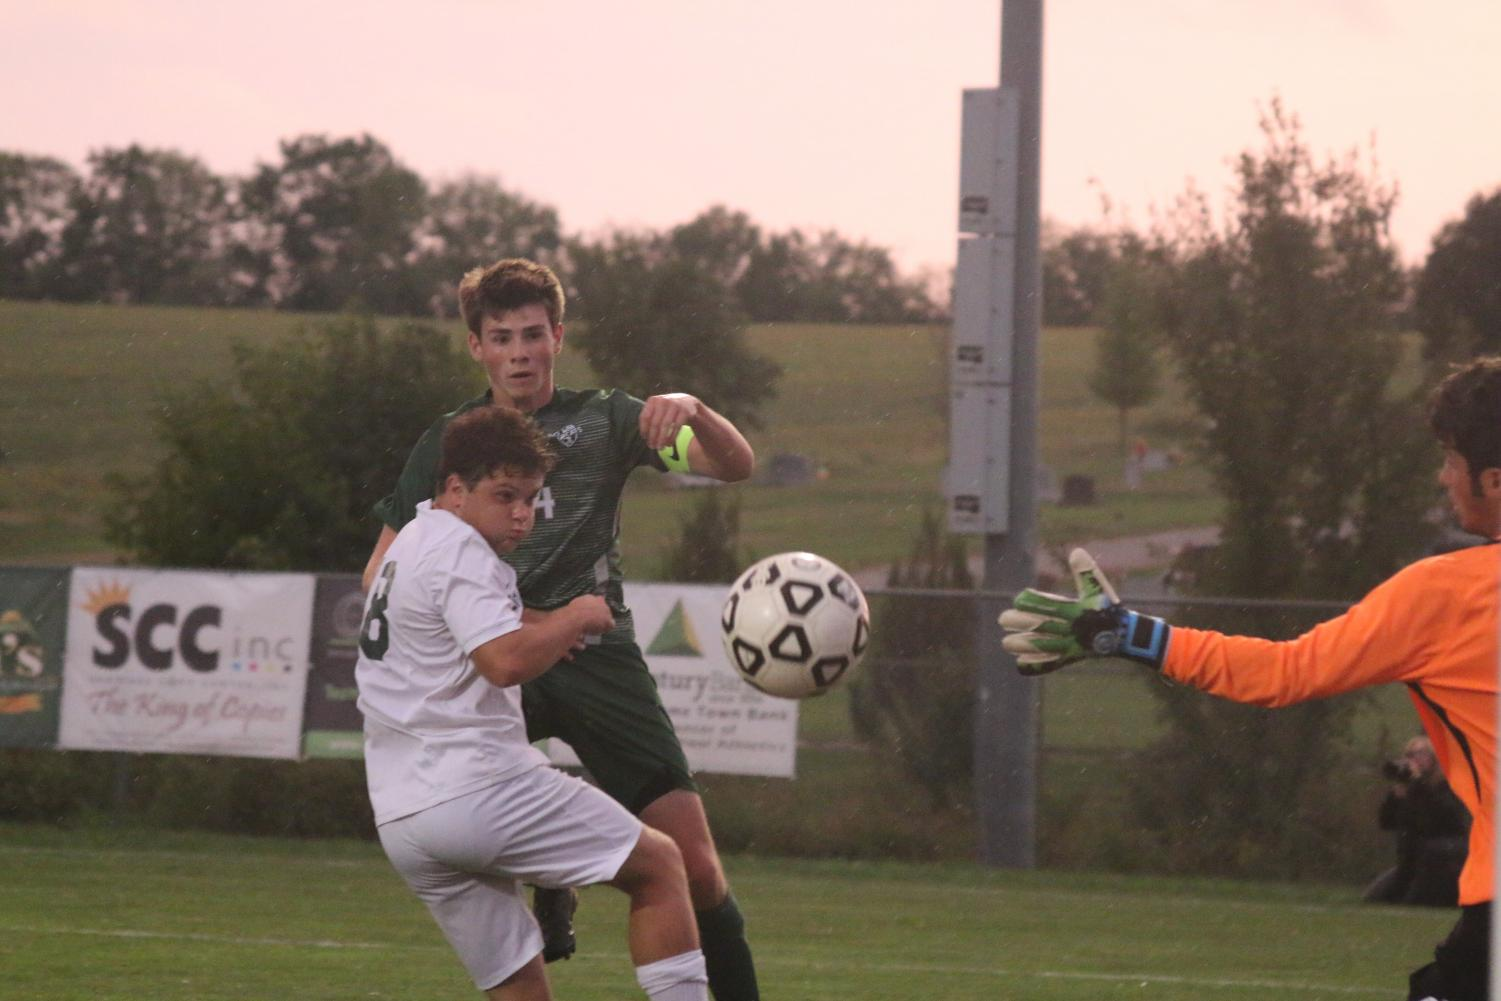 Senior+defender+Sean+Eggers+places+a+header+past+the+Basehor-Linwood+goalie+to+strike+first+in+a+4-0+win+for+the+Wildcats+on+Sept.+25.